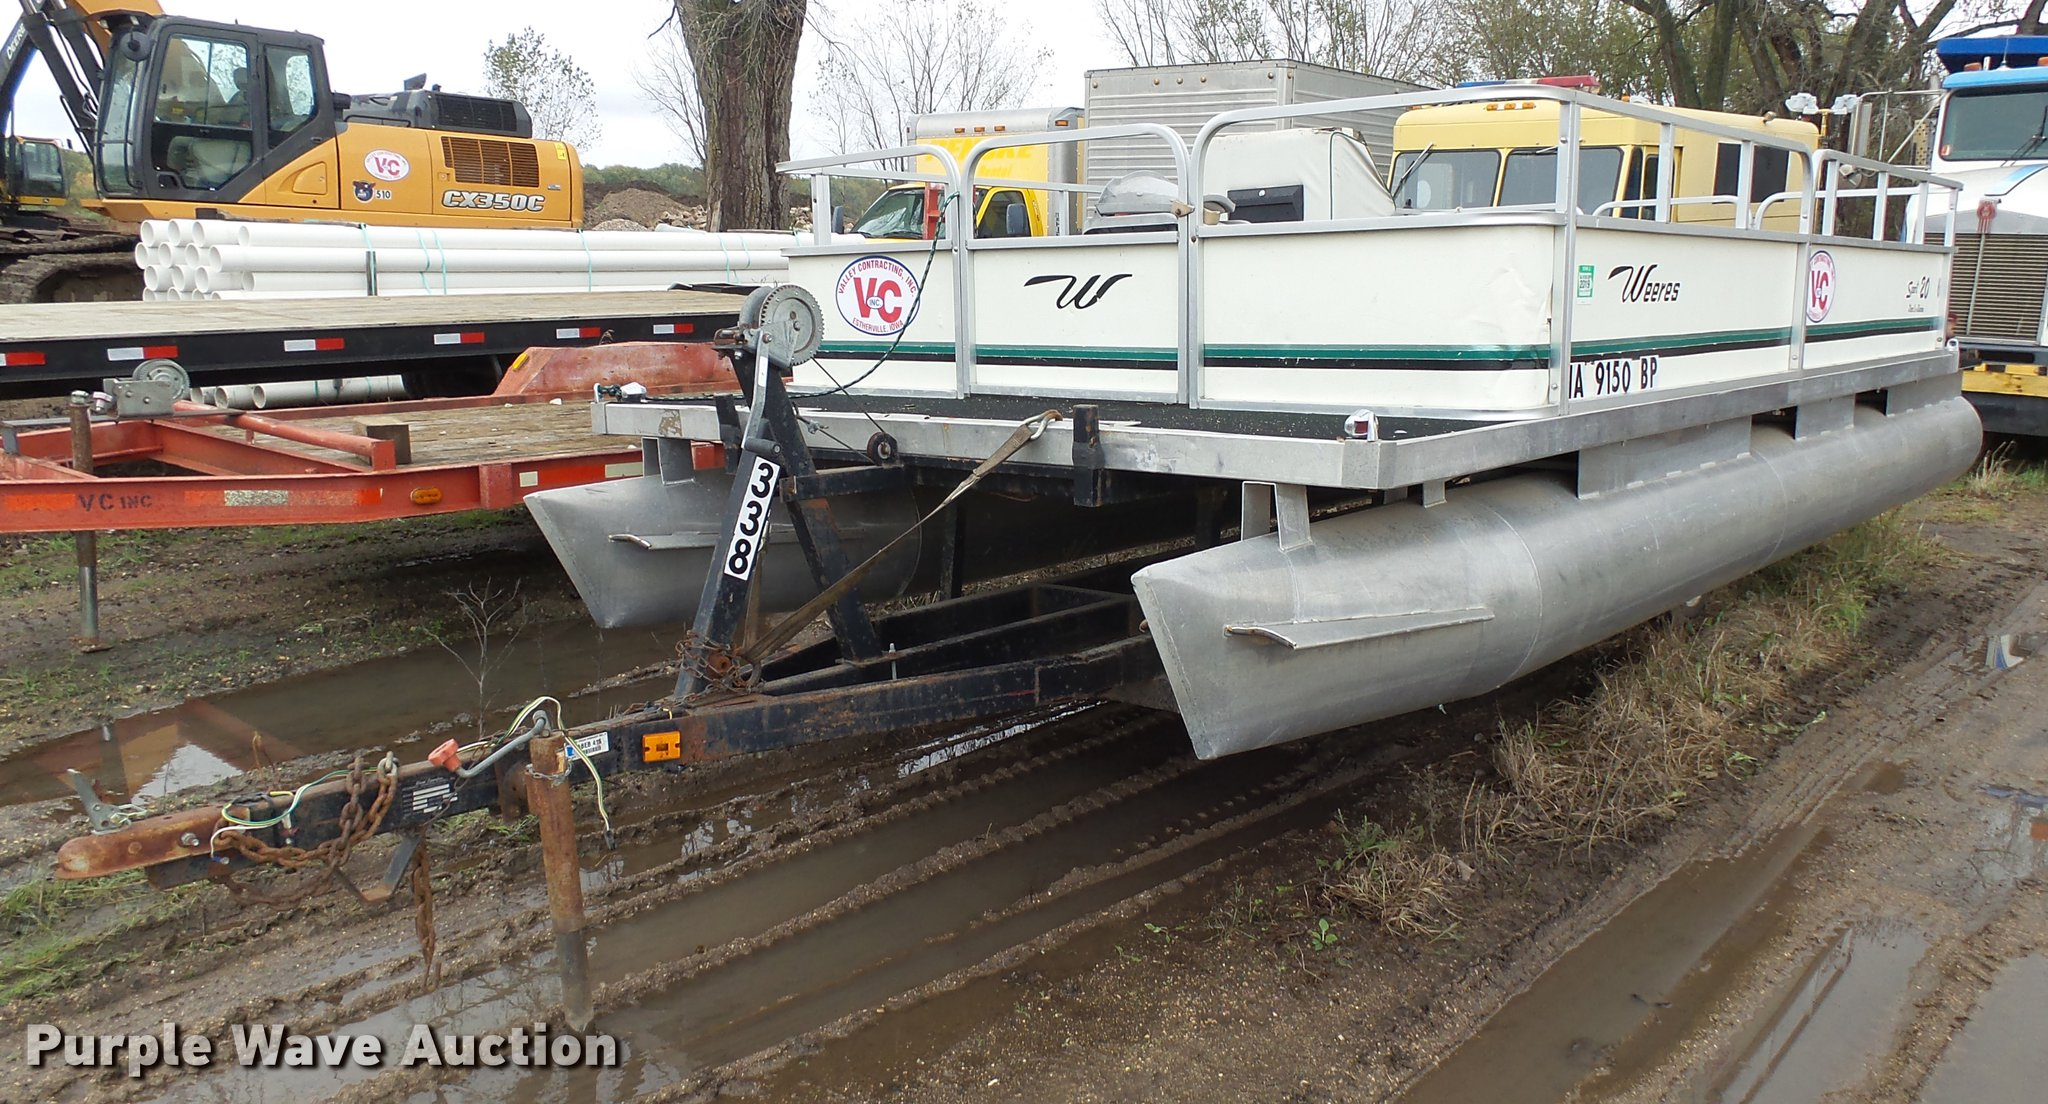 1991 Weeres Sport 20 pontoon boat | Item DX9142 | SOLD! Nove